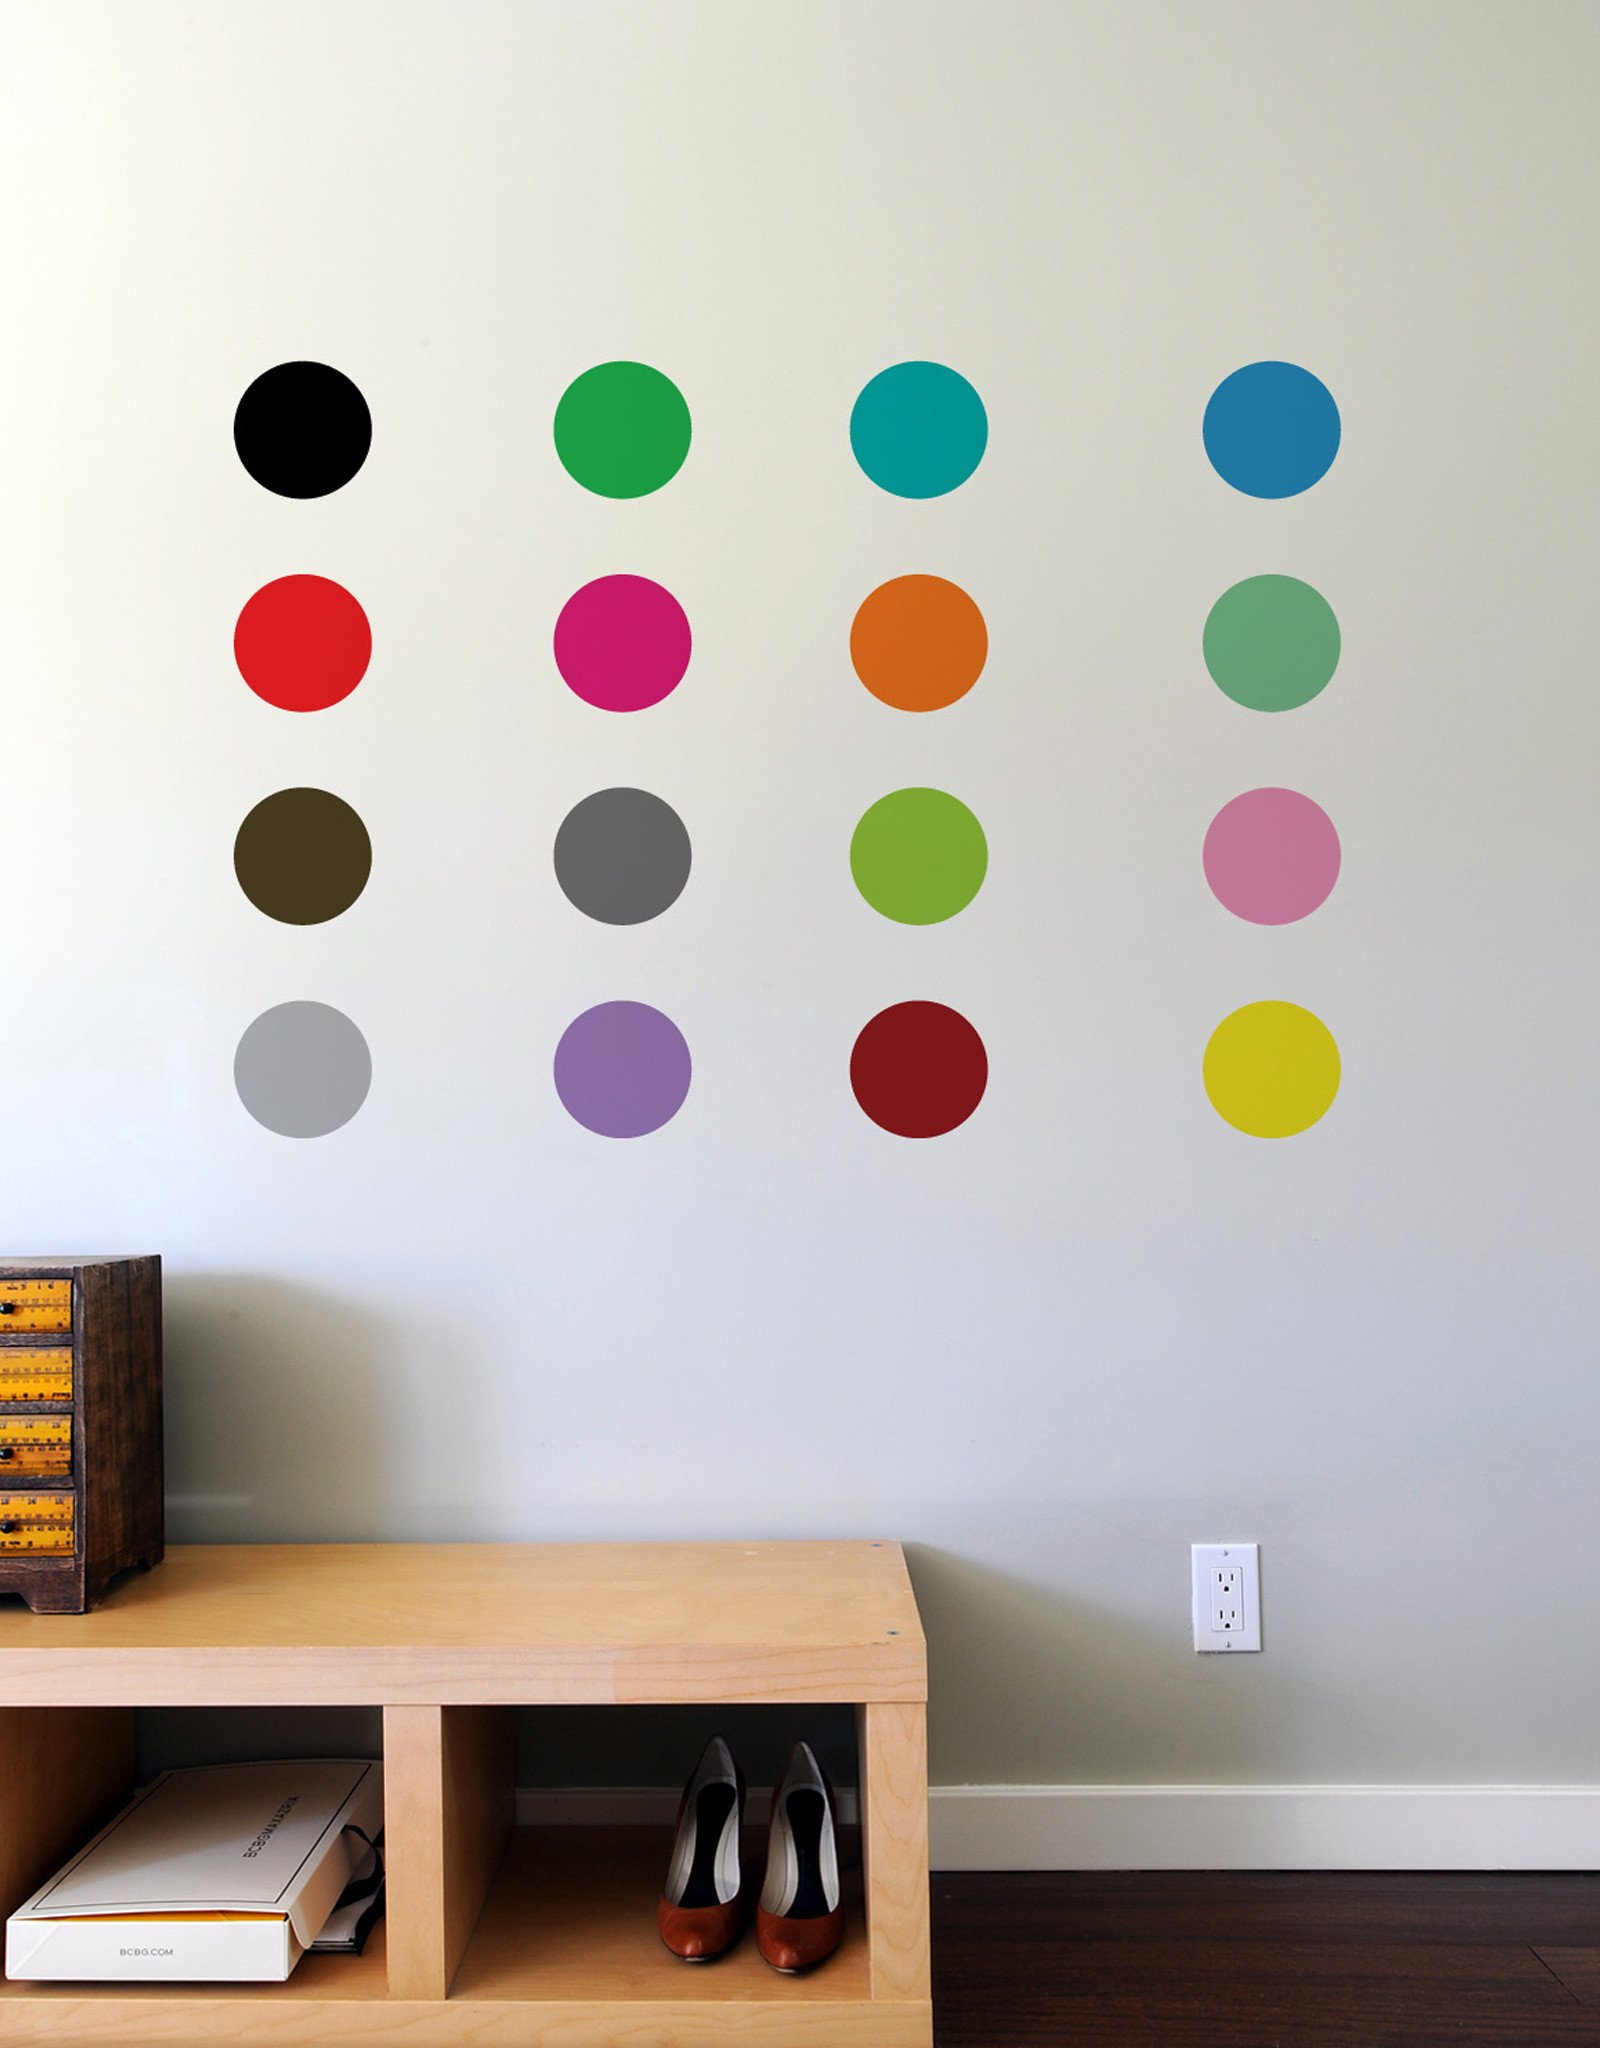 Damien Hirst inspired - Spot Painting Wall Stickers  & Wall Decals only on Stickboutik.com - 2/4